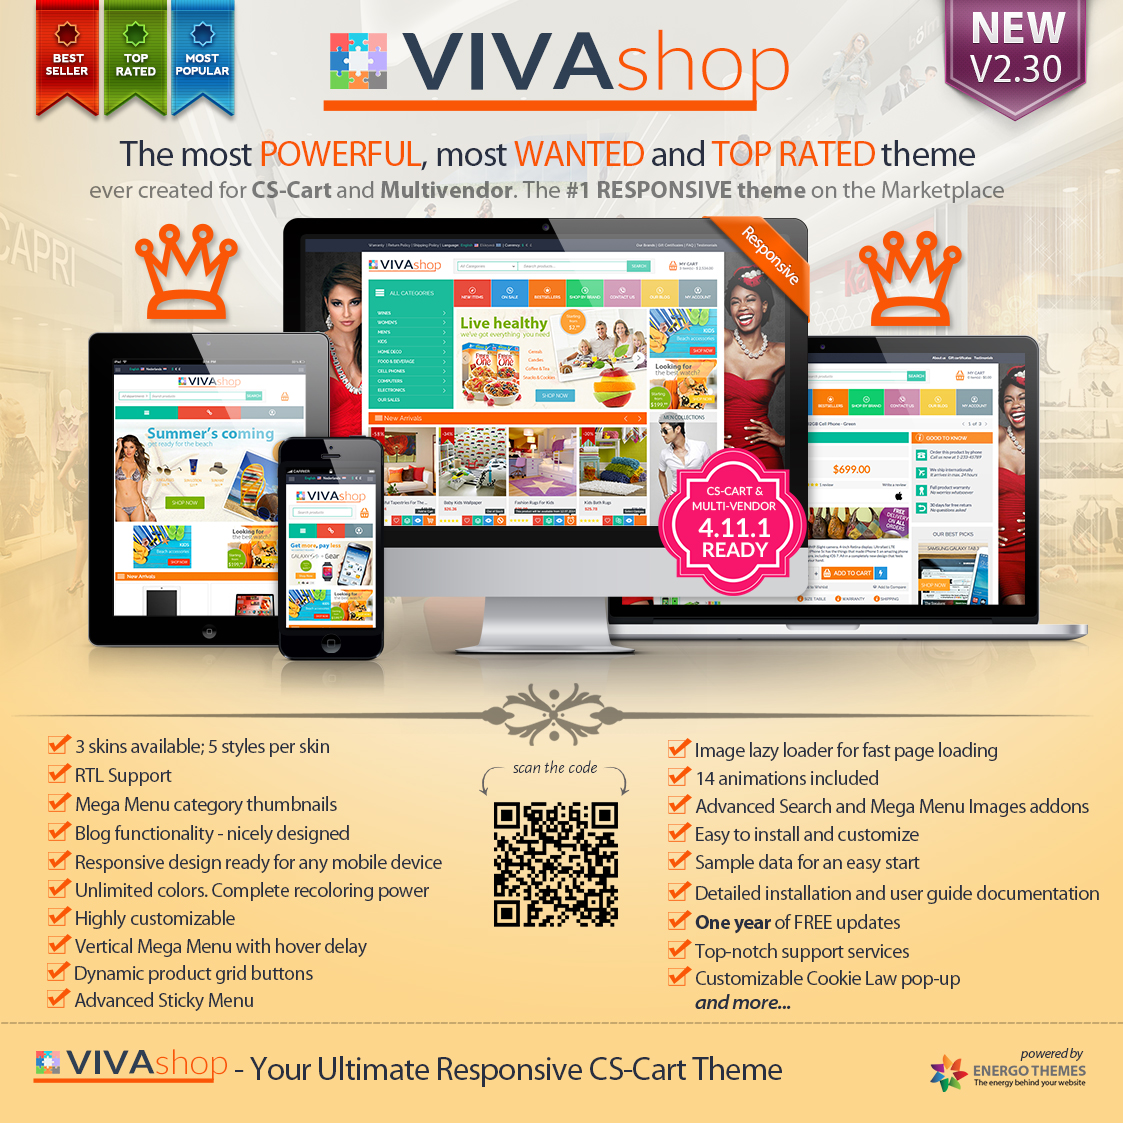 VIVAshop-V2.30-presentation-page-MP.jpg